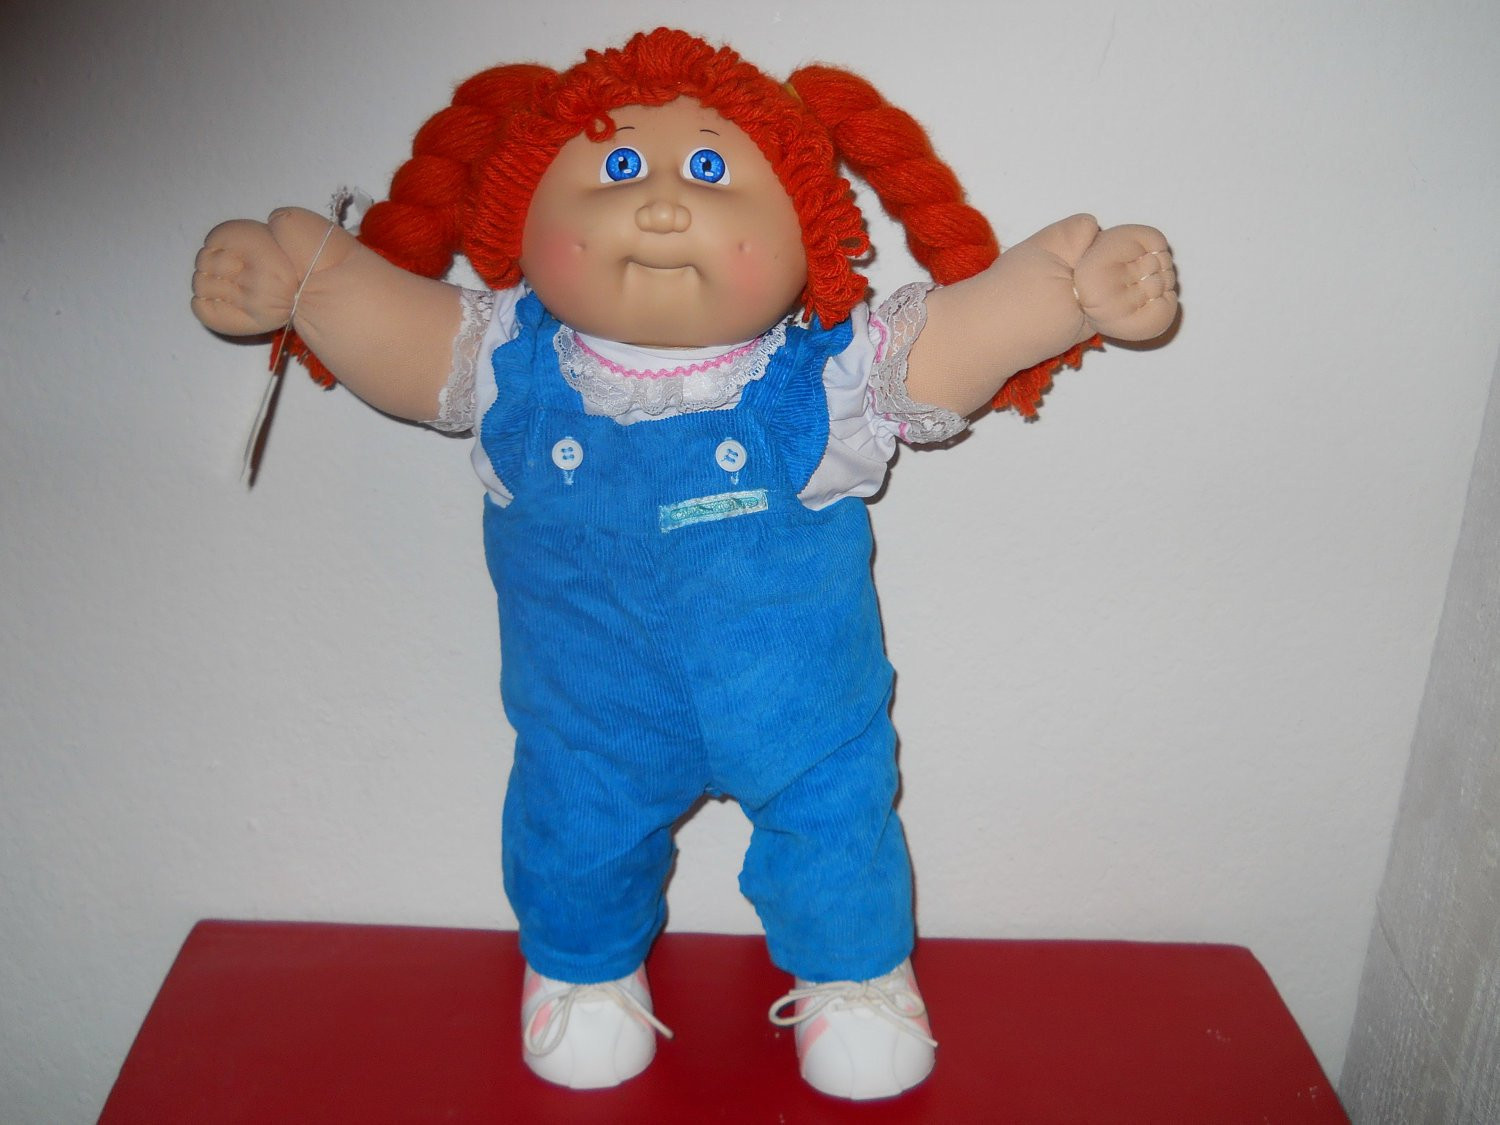 New Vintage 1983 Cabbage Patch Doll Diane Olympia Old Cabbage Patch Doll Of Wonderful 47 Ideas Old Cabbage Patch Doll